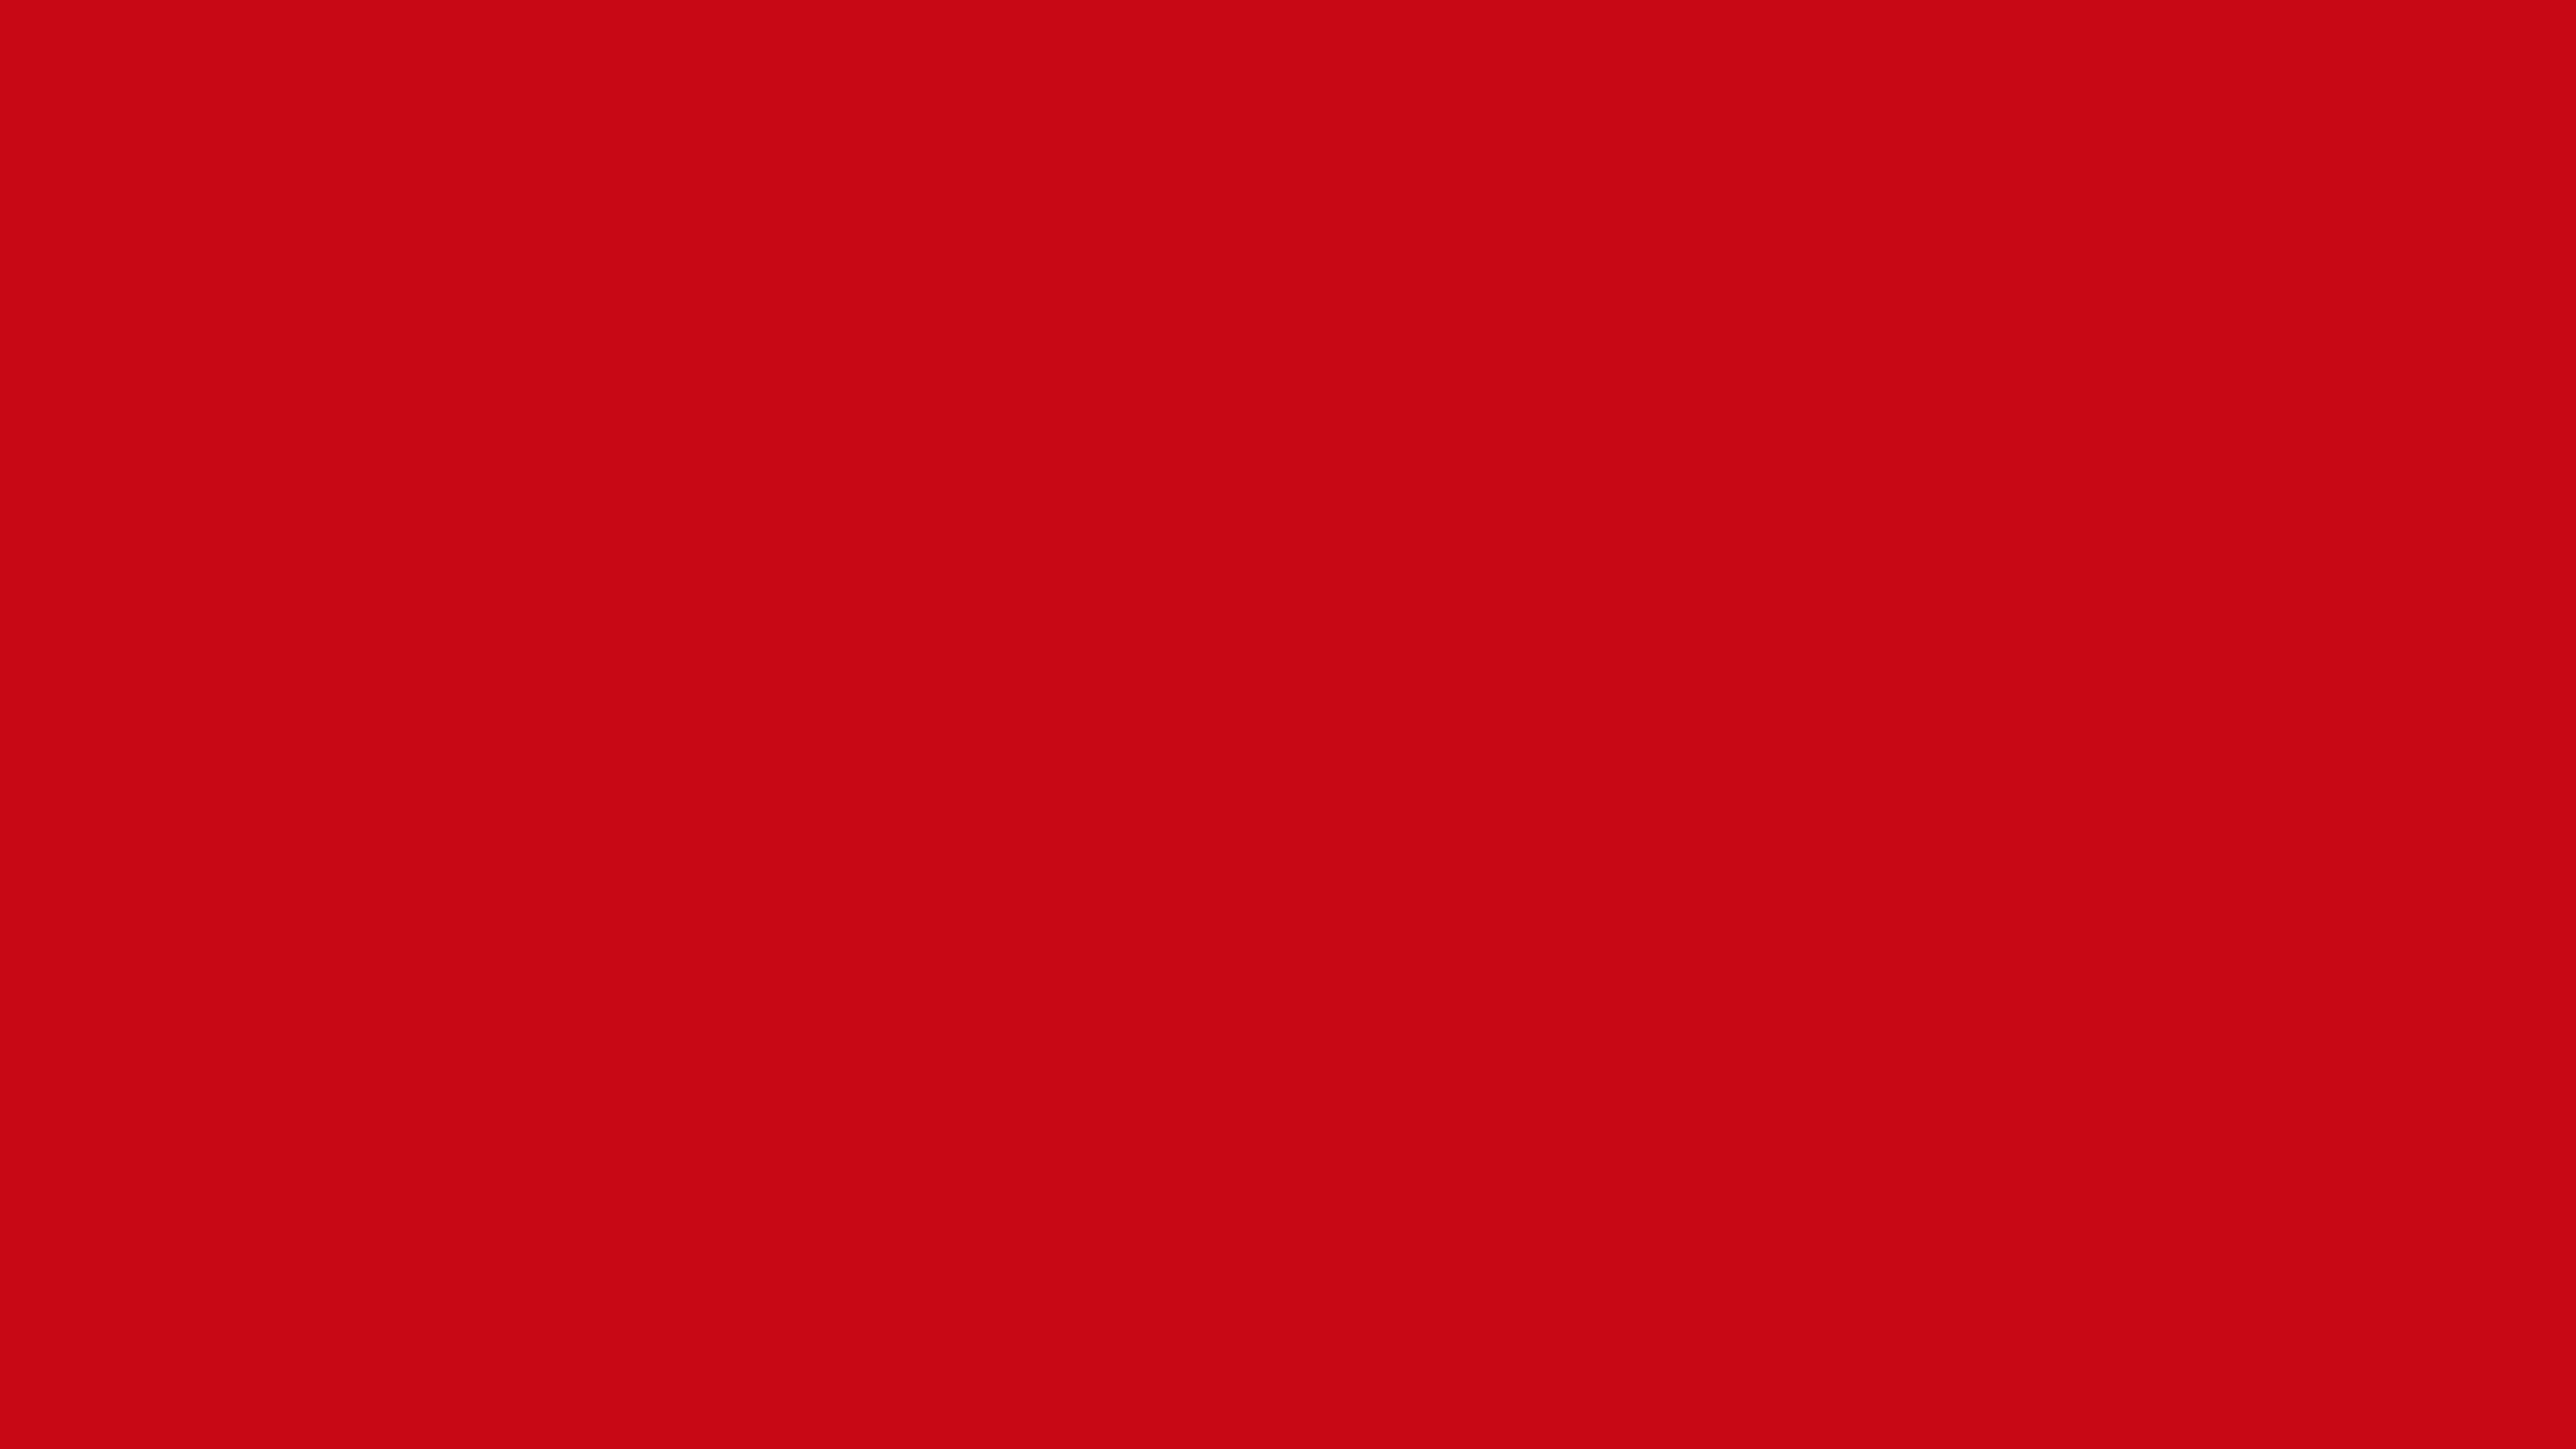 3840x2160 Venetian Red Solid Color Background